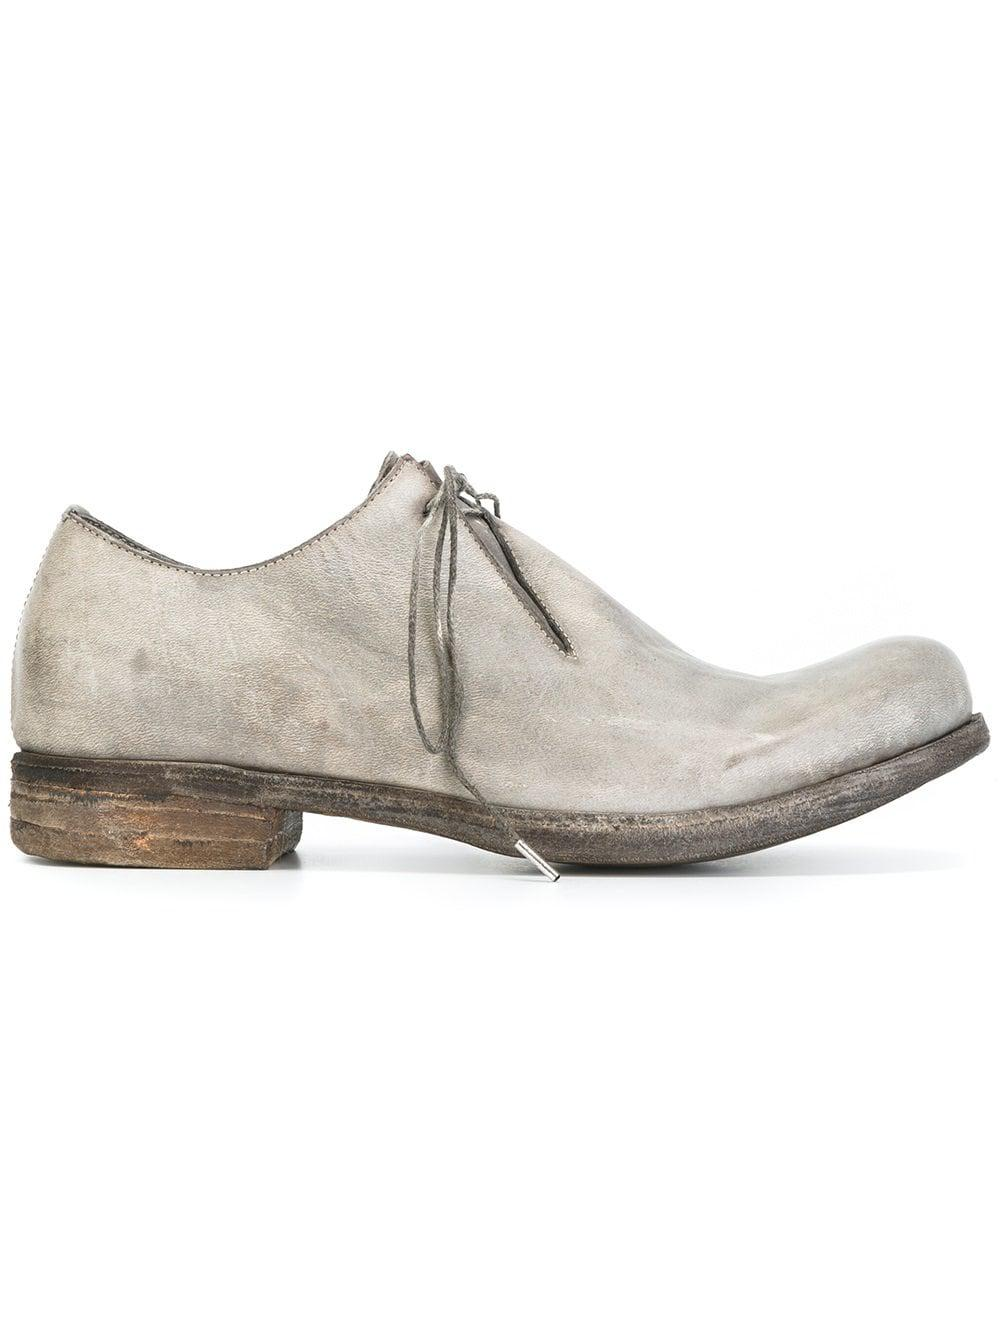 A Diciannoveventitre Leather Classic Derby Shoes in Grey (Grey) for Men